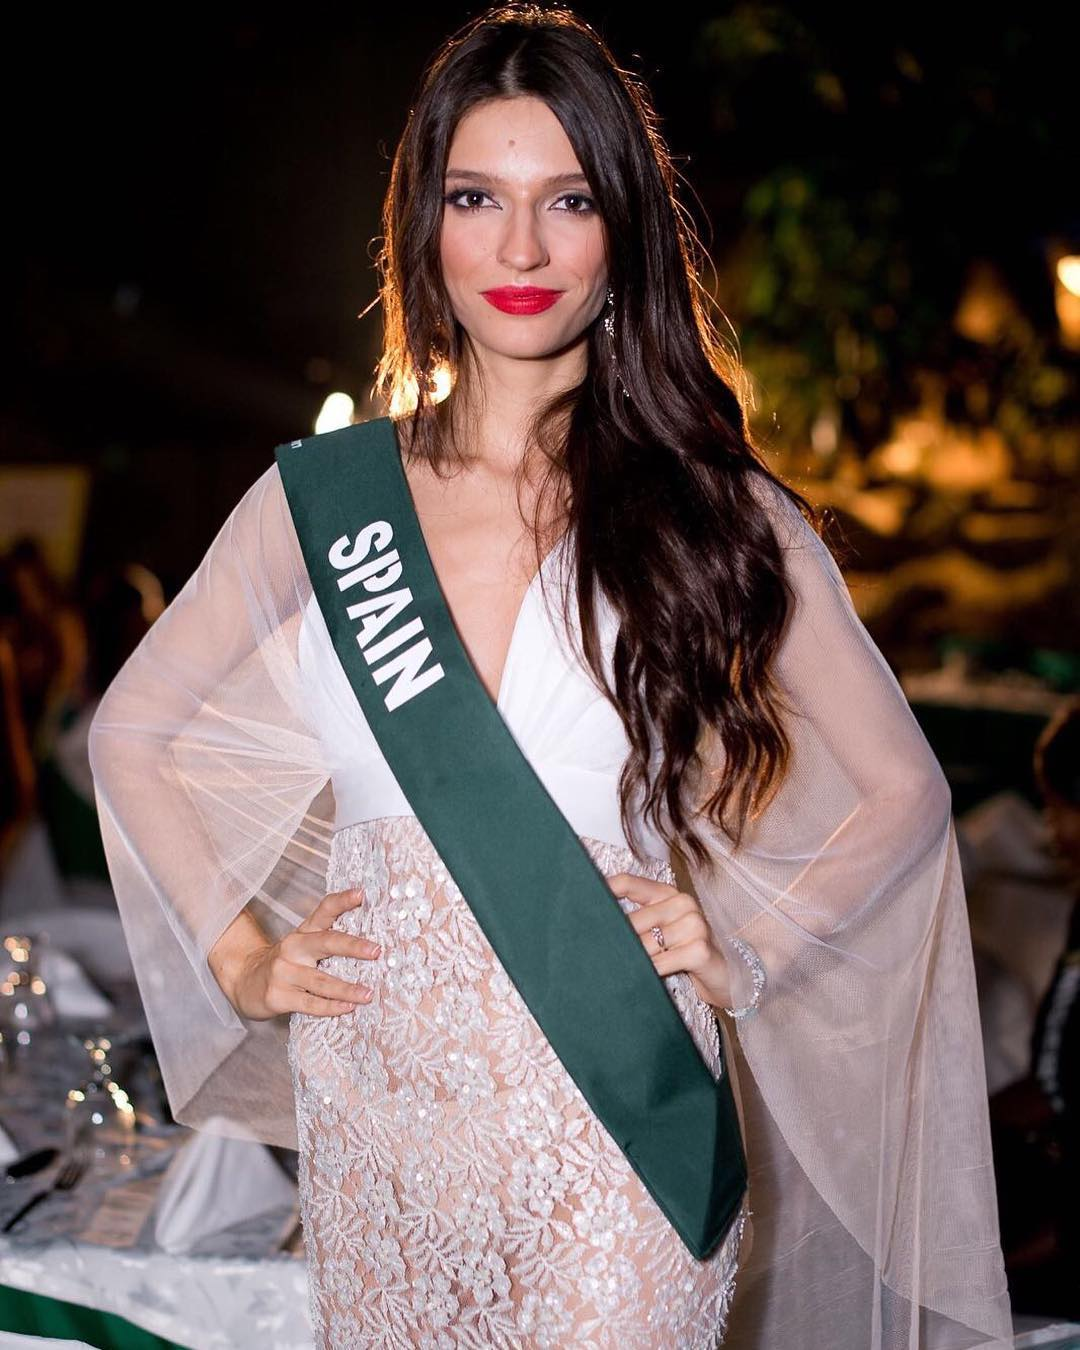 ainara de santamaria villamor, miss world cantabria 2018/miss earth spain 2017. - Página 2 20838410